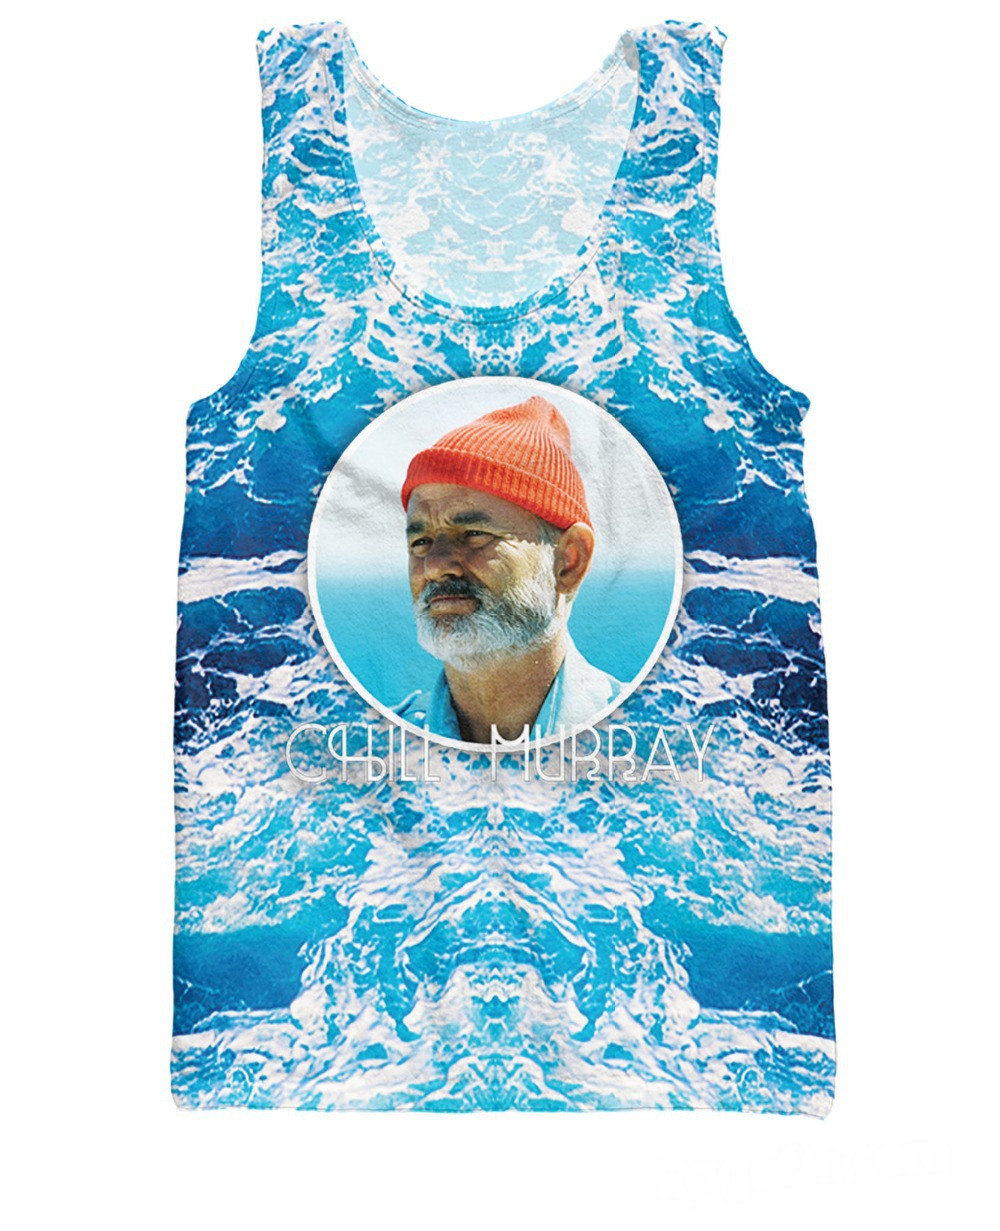 RuiYi Summer Style Bill Murray in this Chill Murray Tank Top The Life Aquatic with Steve Zissou 3d Basketball Vest Jersey Women(China (Mainland))